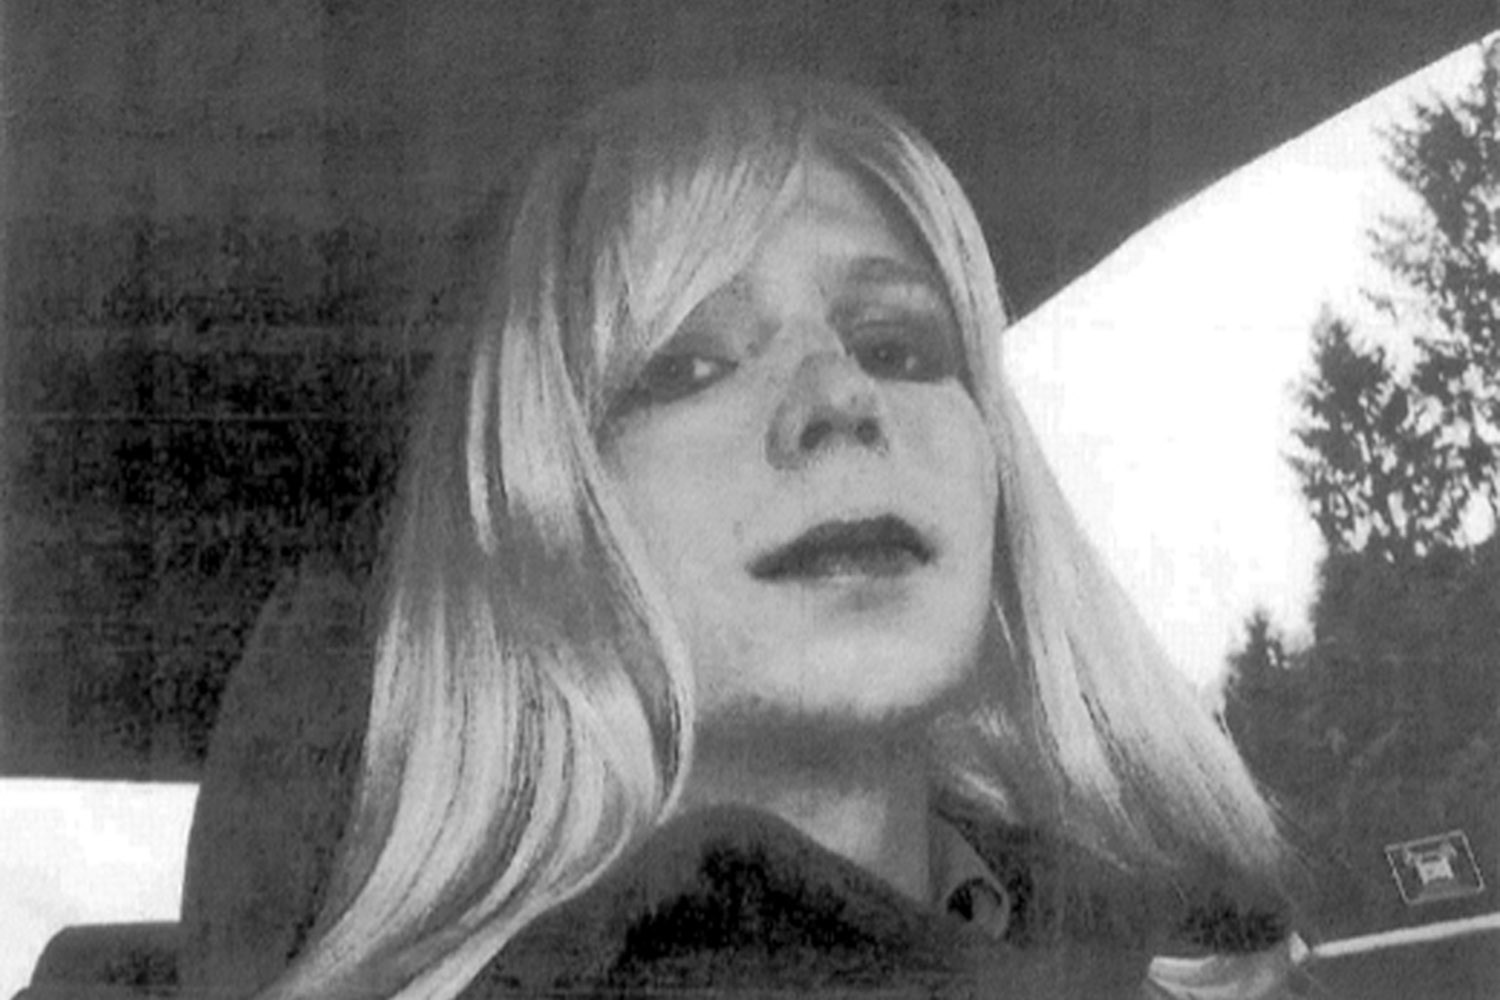 Undated. This photo provided by the U.S. Army shows Pfc. Bradley Manning posing for a picture wearing a wig and lipstick.